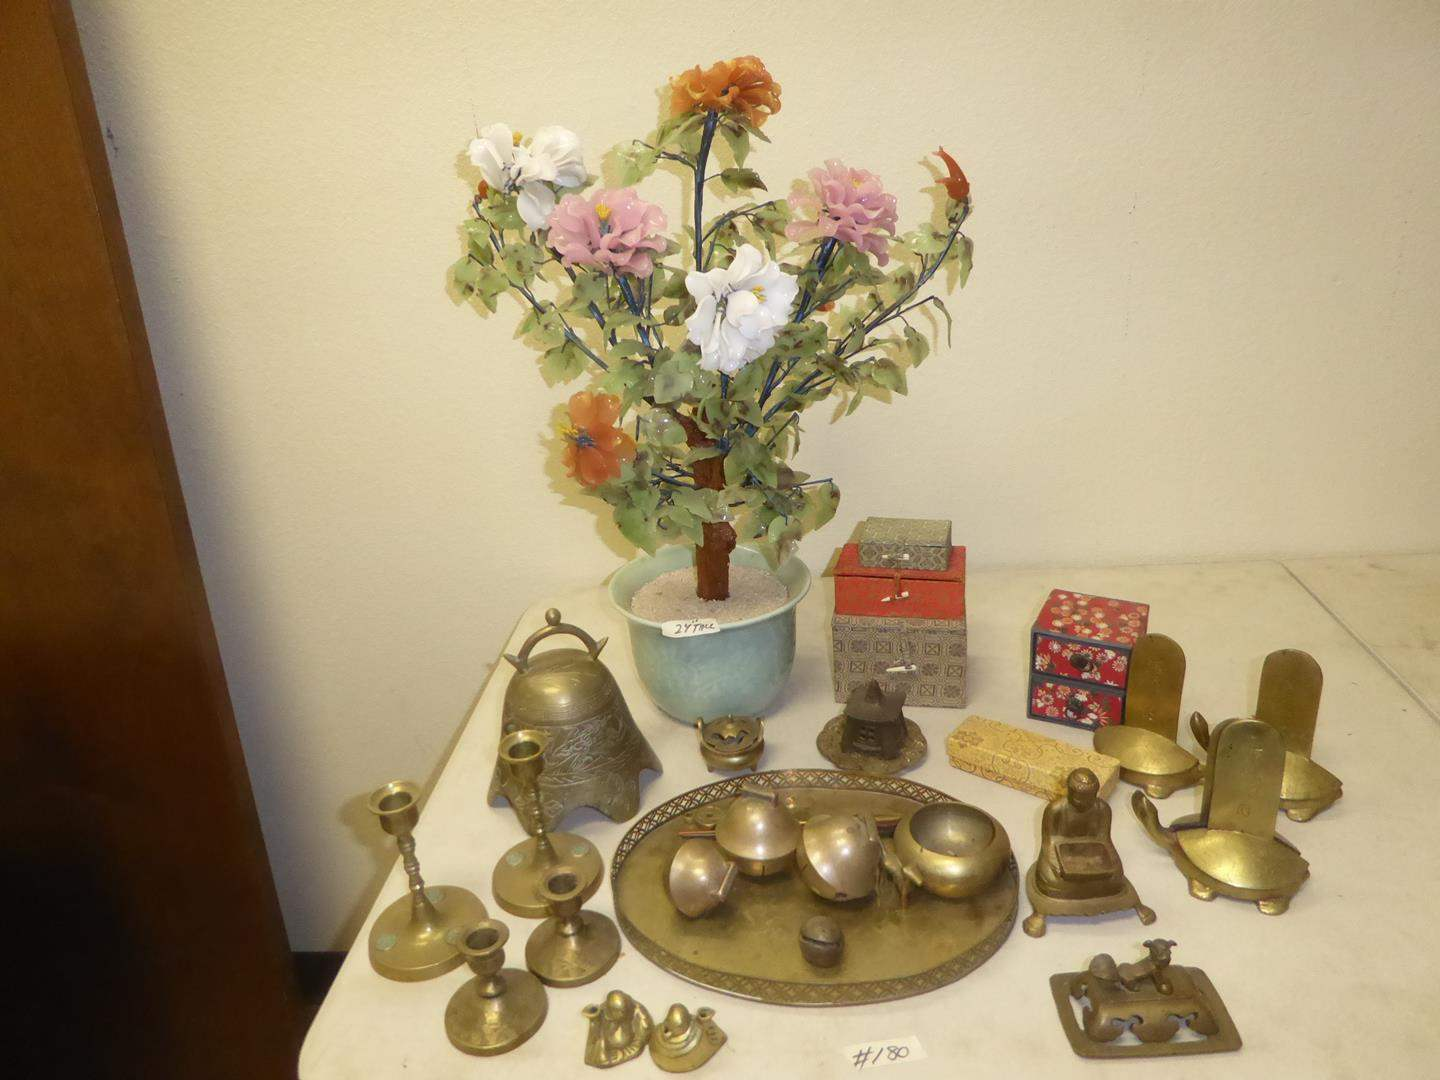 Lot # 180 - Oriental Stone Jade Tree Flower, Brass Turtle Bookends, Brass Buddhas, Brass Tray, Candle Holders & More (main image)